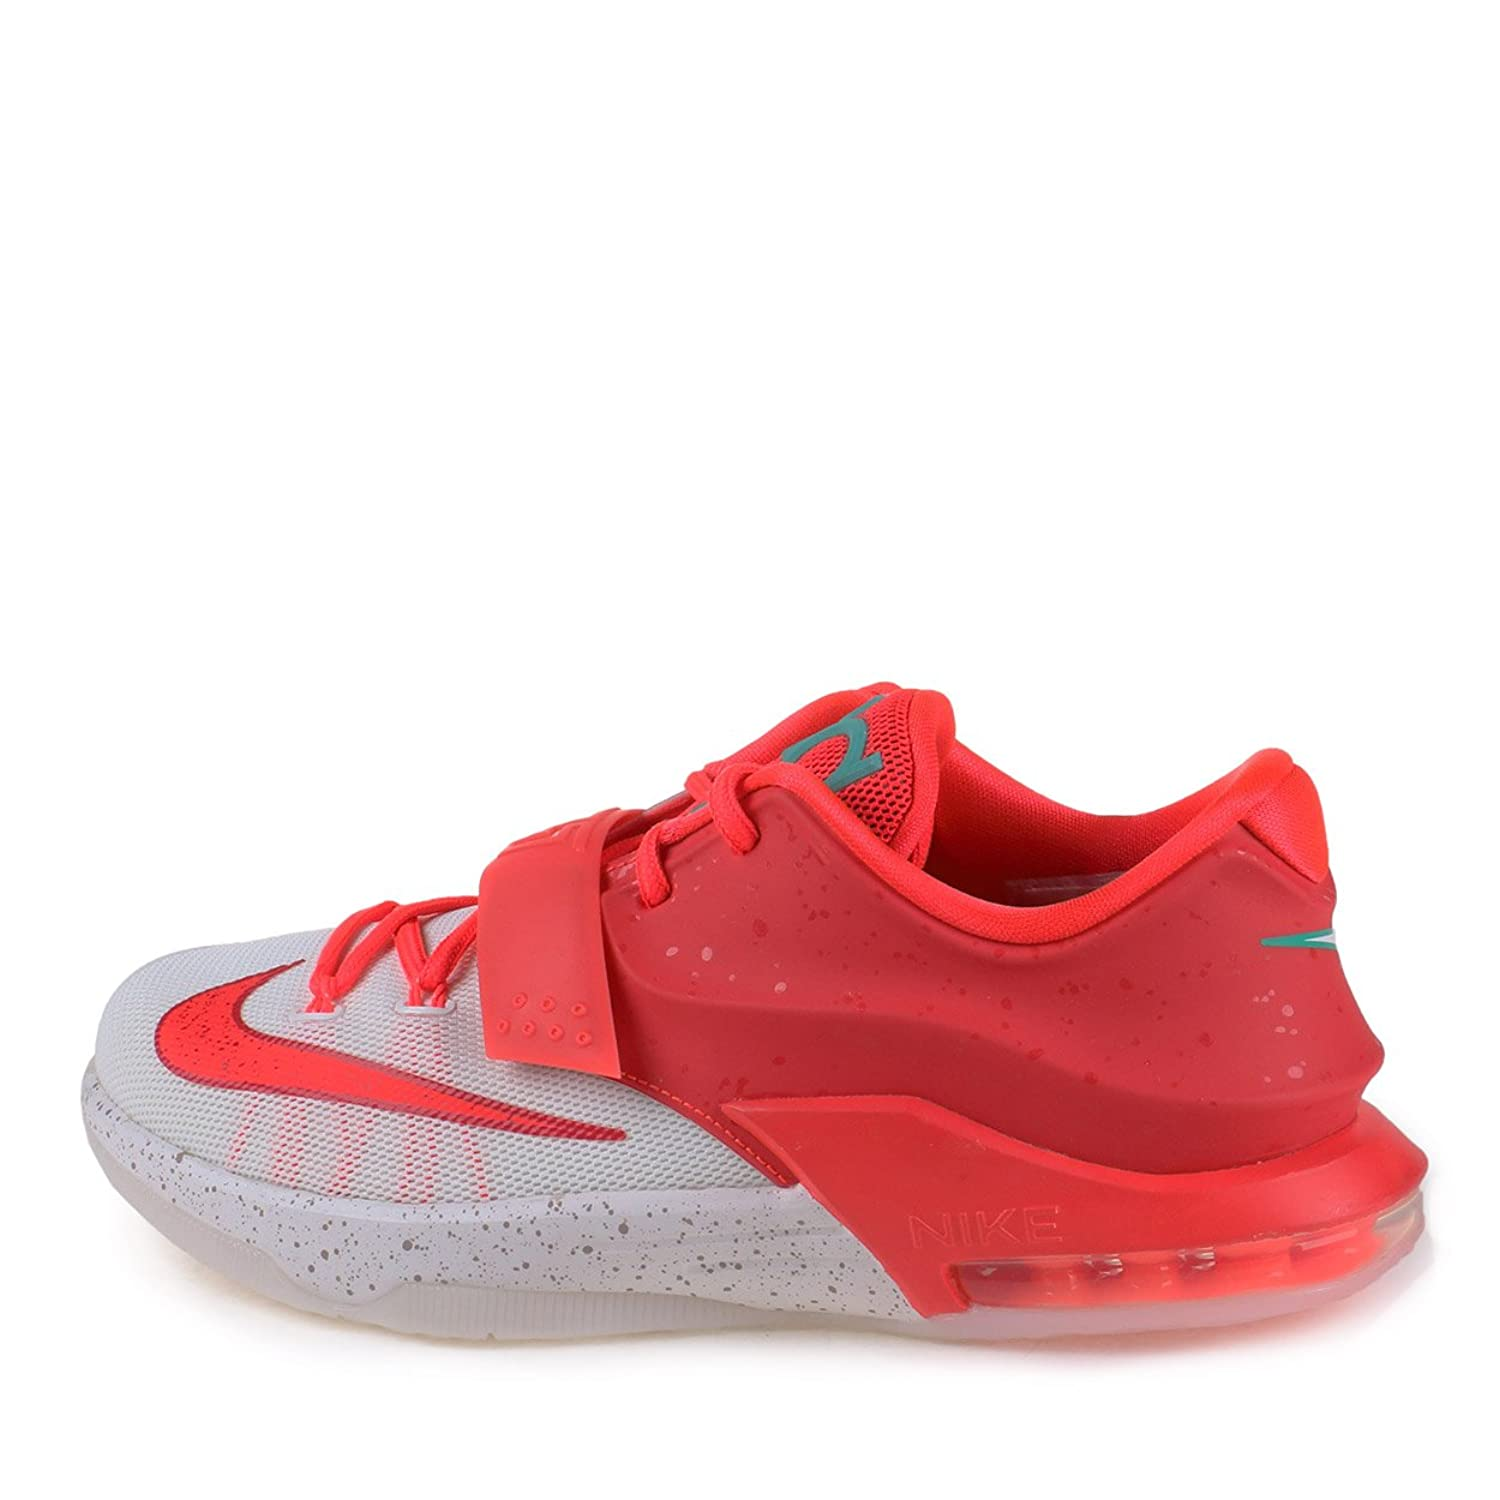 Kd 6 Christmas Size 15 For Sale - Notary Chamber